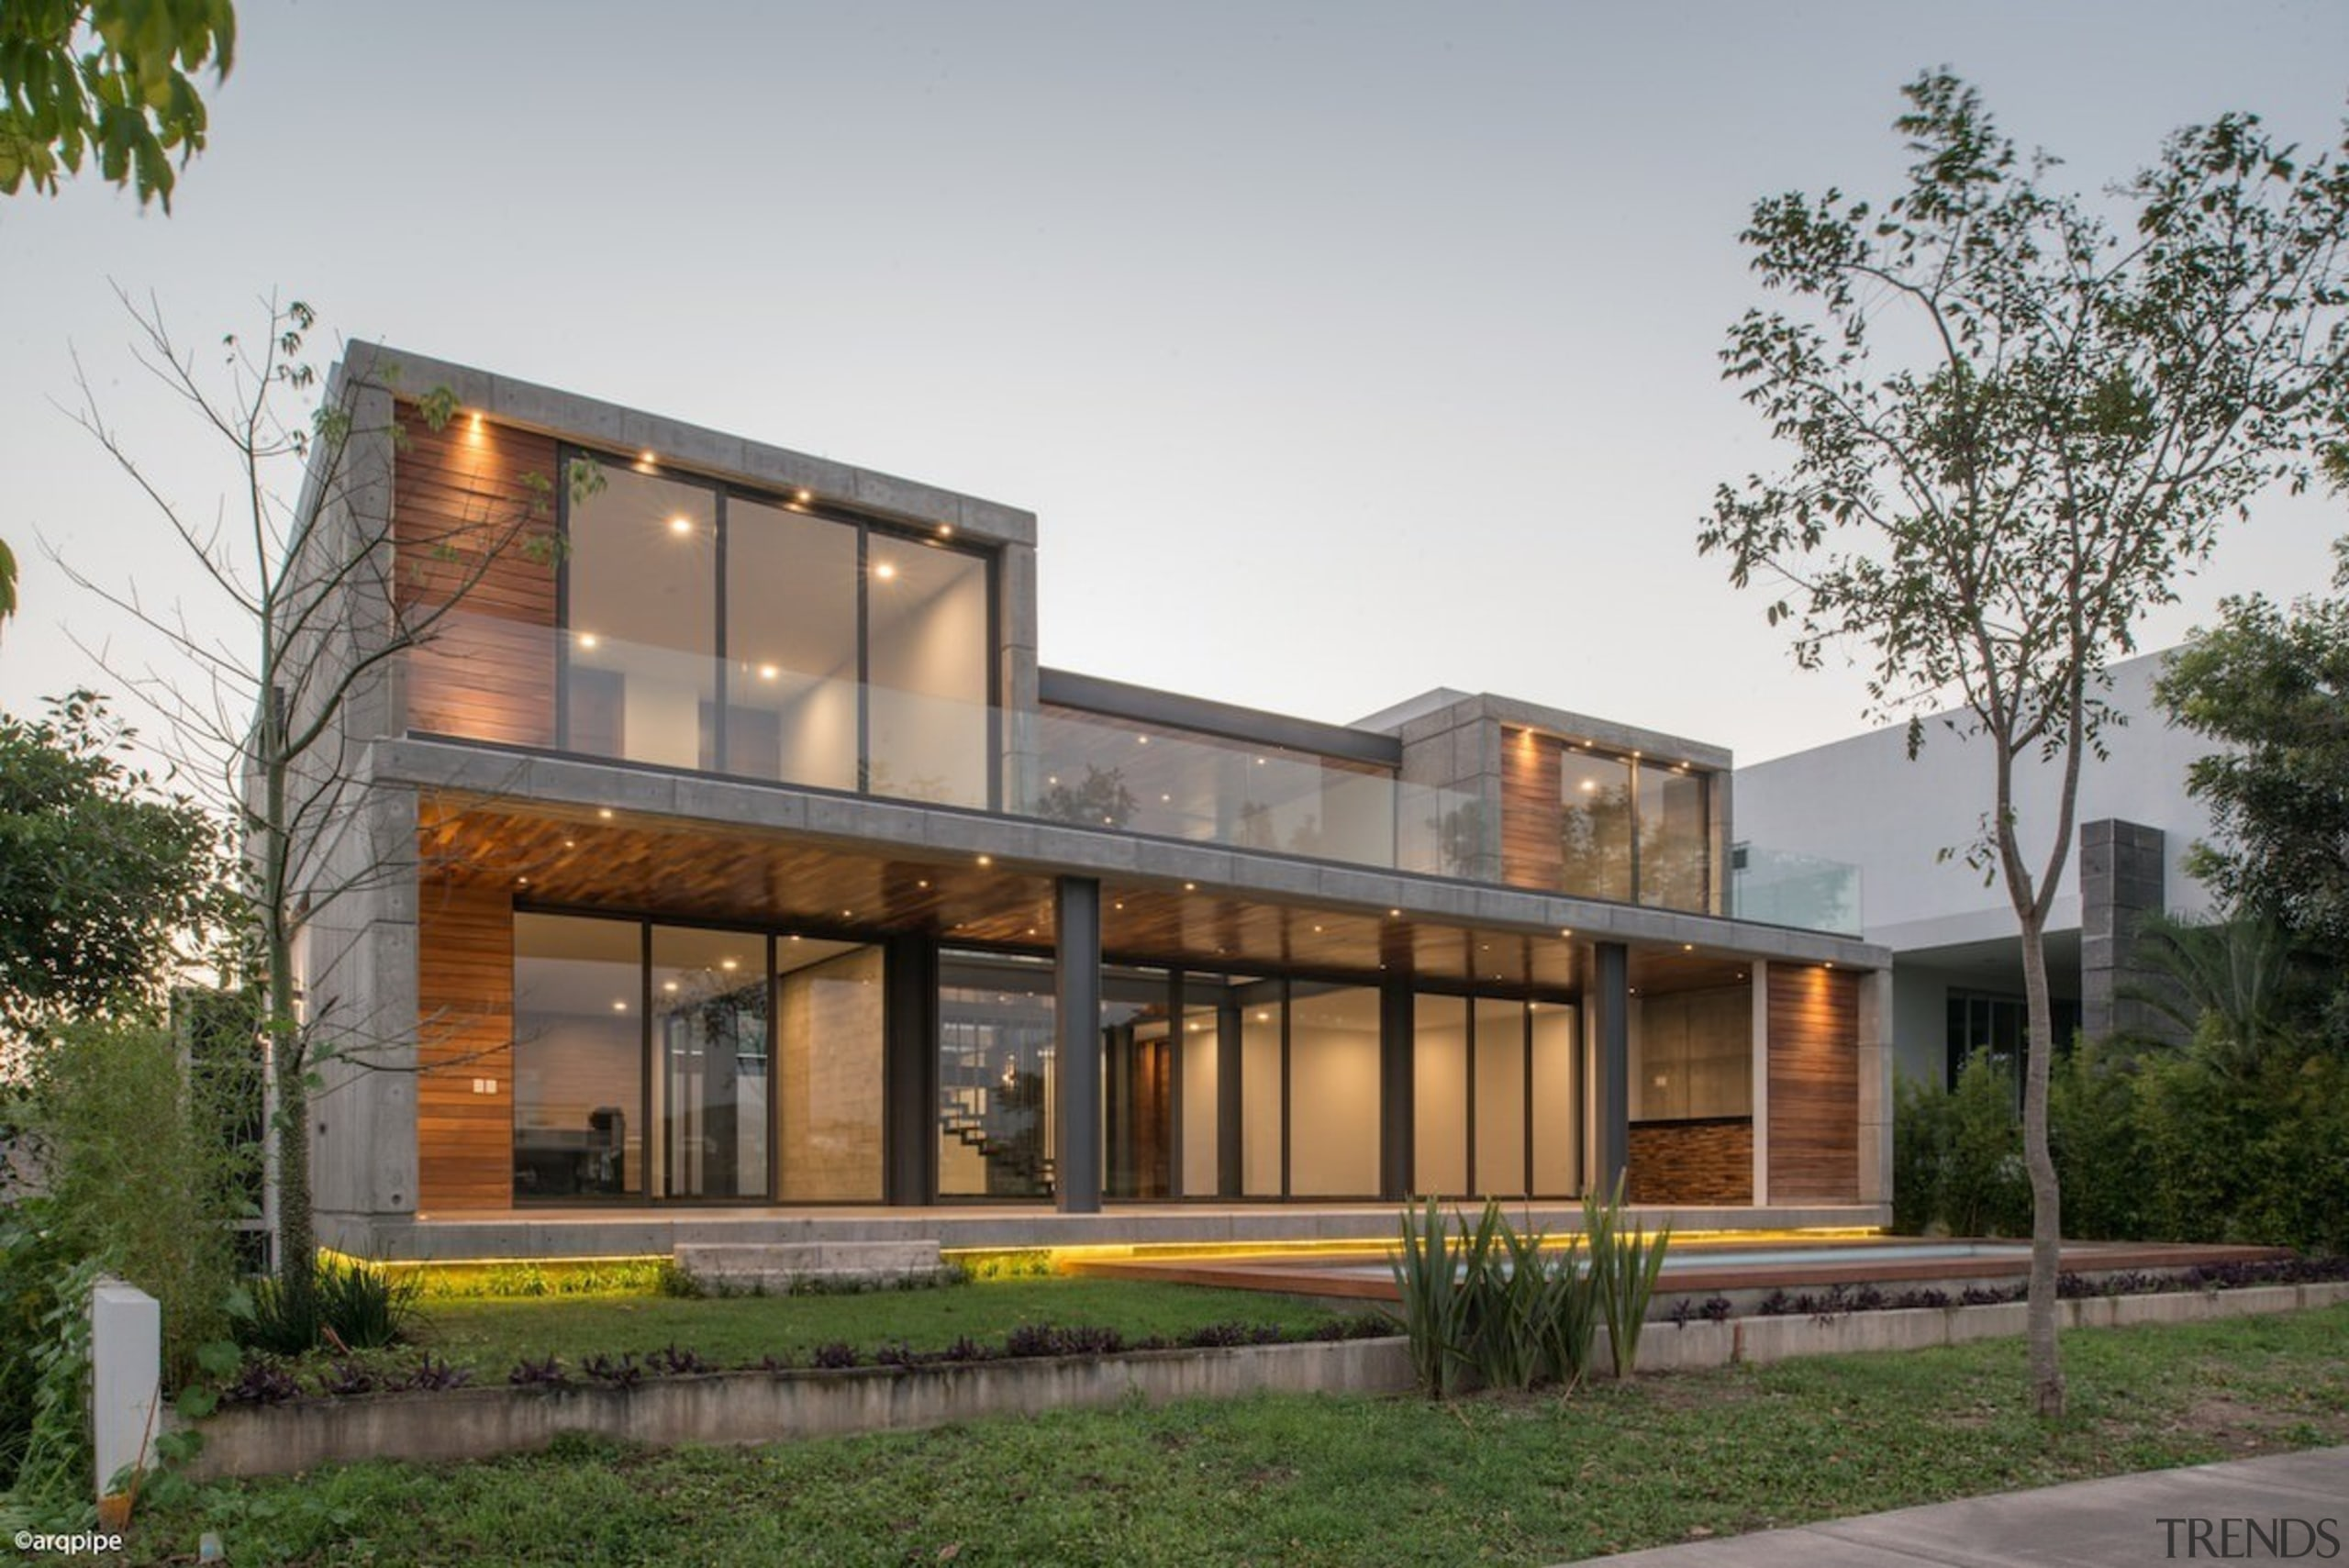 Colima home/Di Frenna Arquitectos - Colima home/Di Frenna architecture, building, elevation, facade, home, house, mixed use, property, real estate, residential area, gray, brown